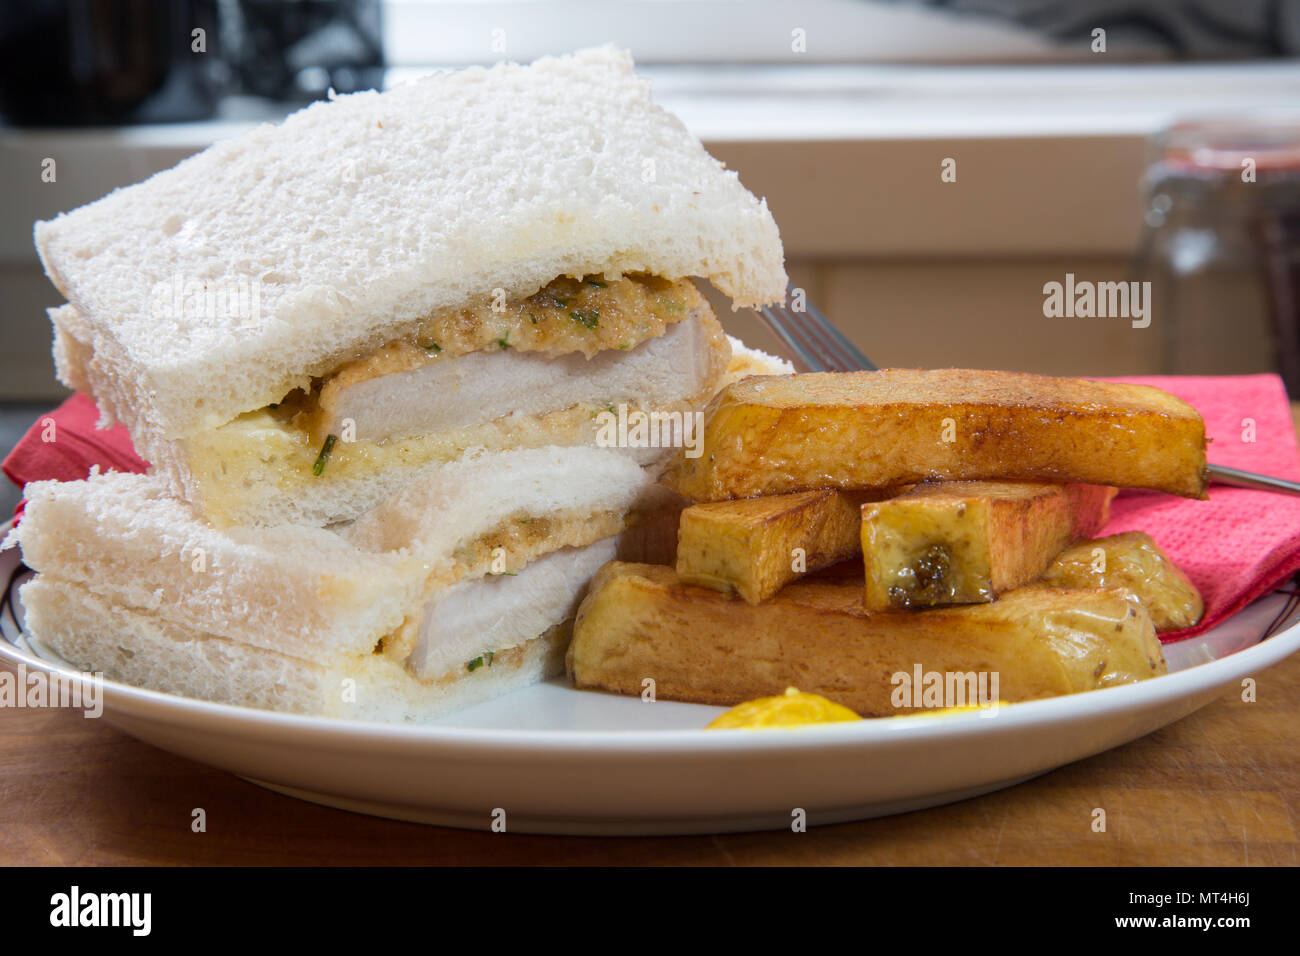 A snack/lunch of fried breaded Pork steak sandwich with white sliced bread and potato chips/fries - Stock Image